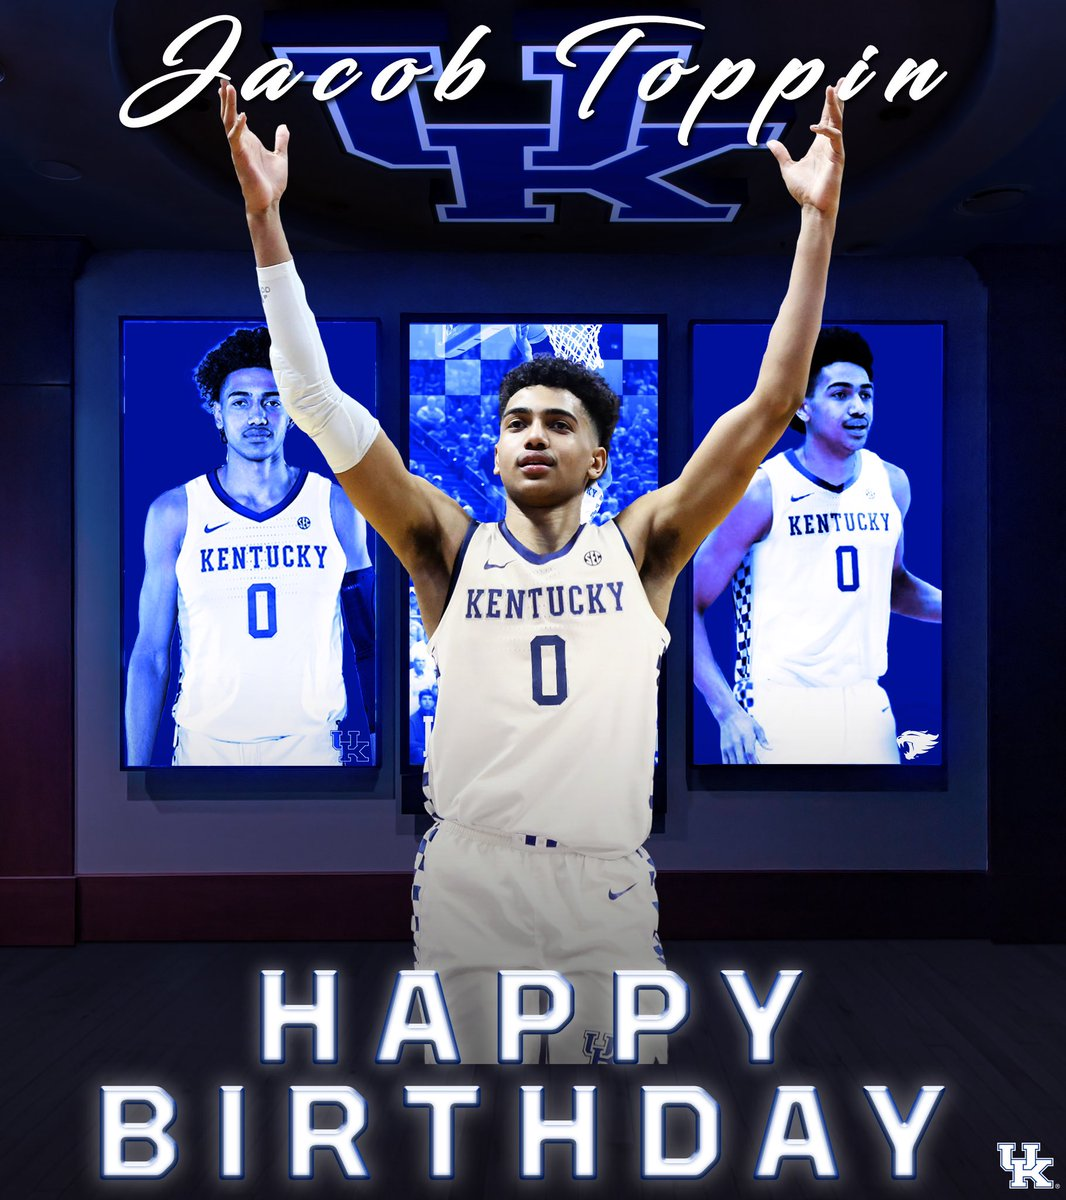 Let's show @Jtoppin21 how we do birthdays around here. Give him a follow and show him some love, #BBN. https://t.co/RUIyQaZunq